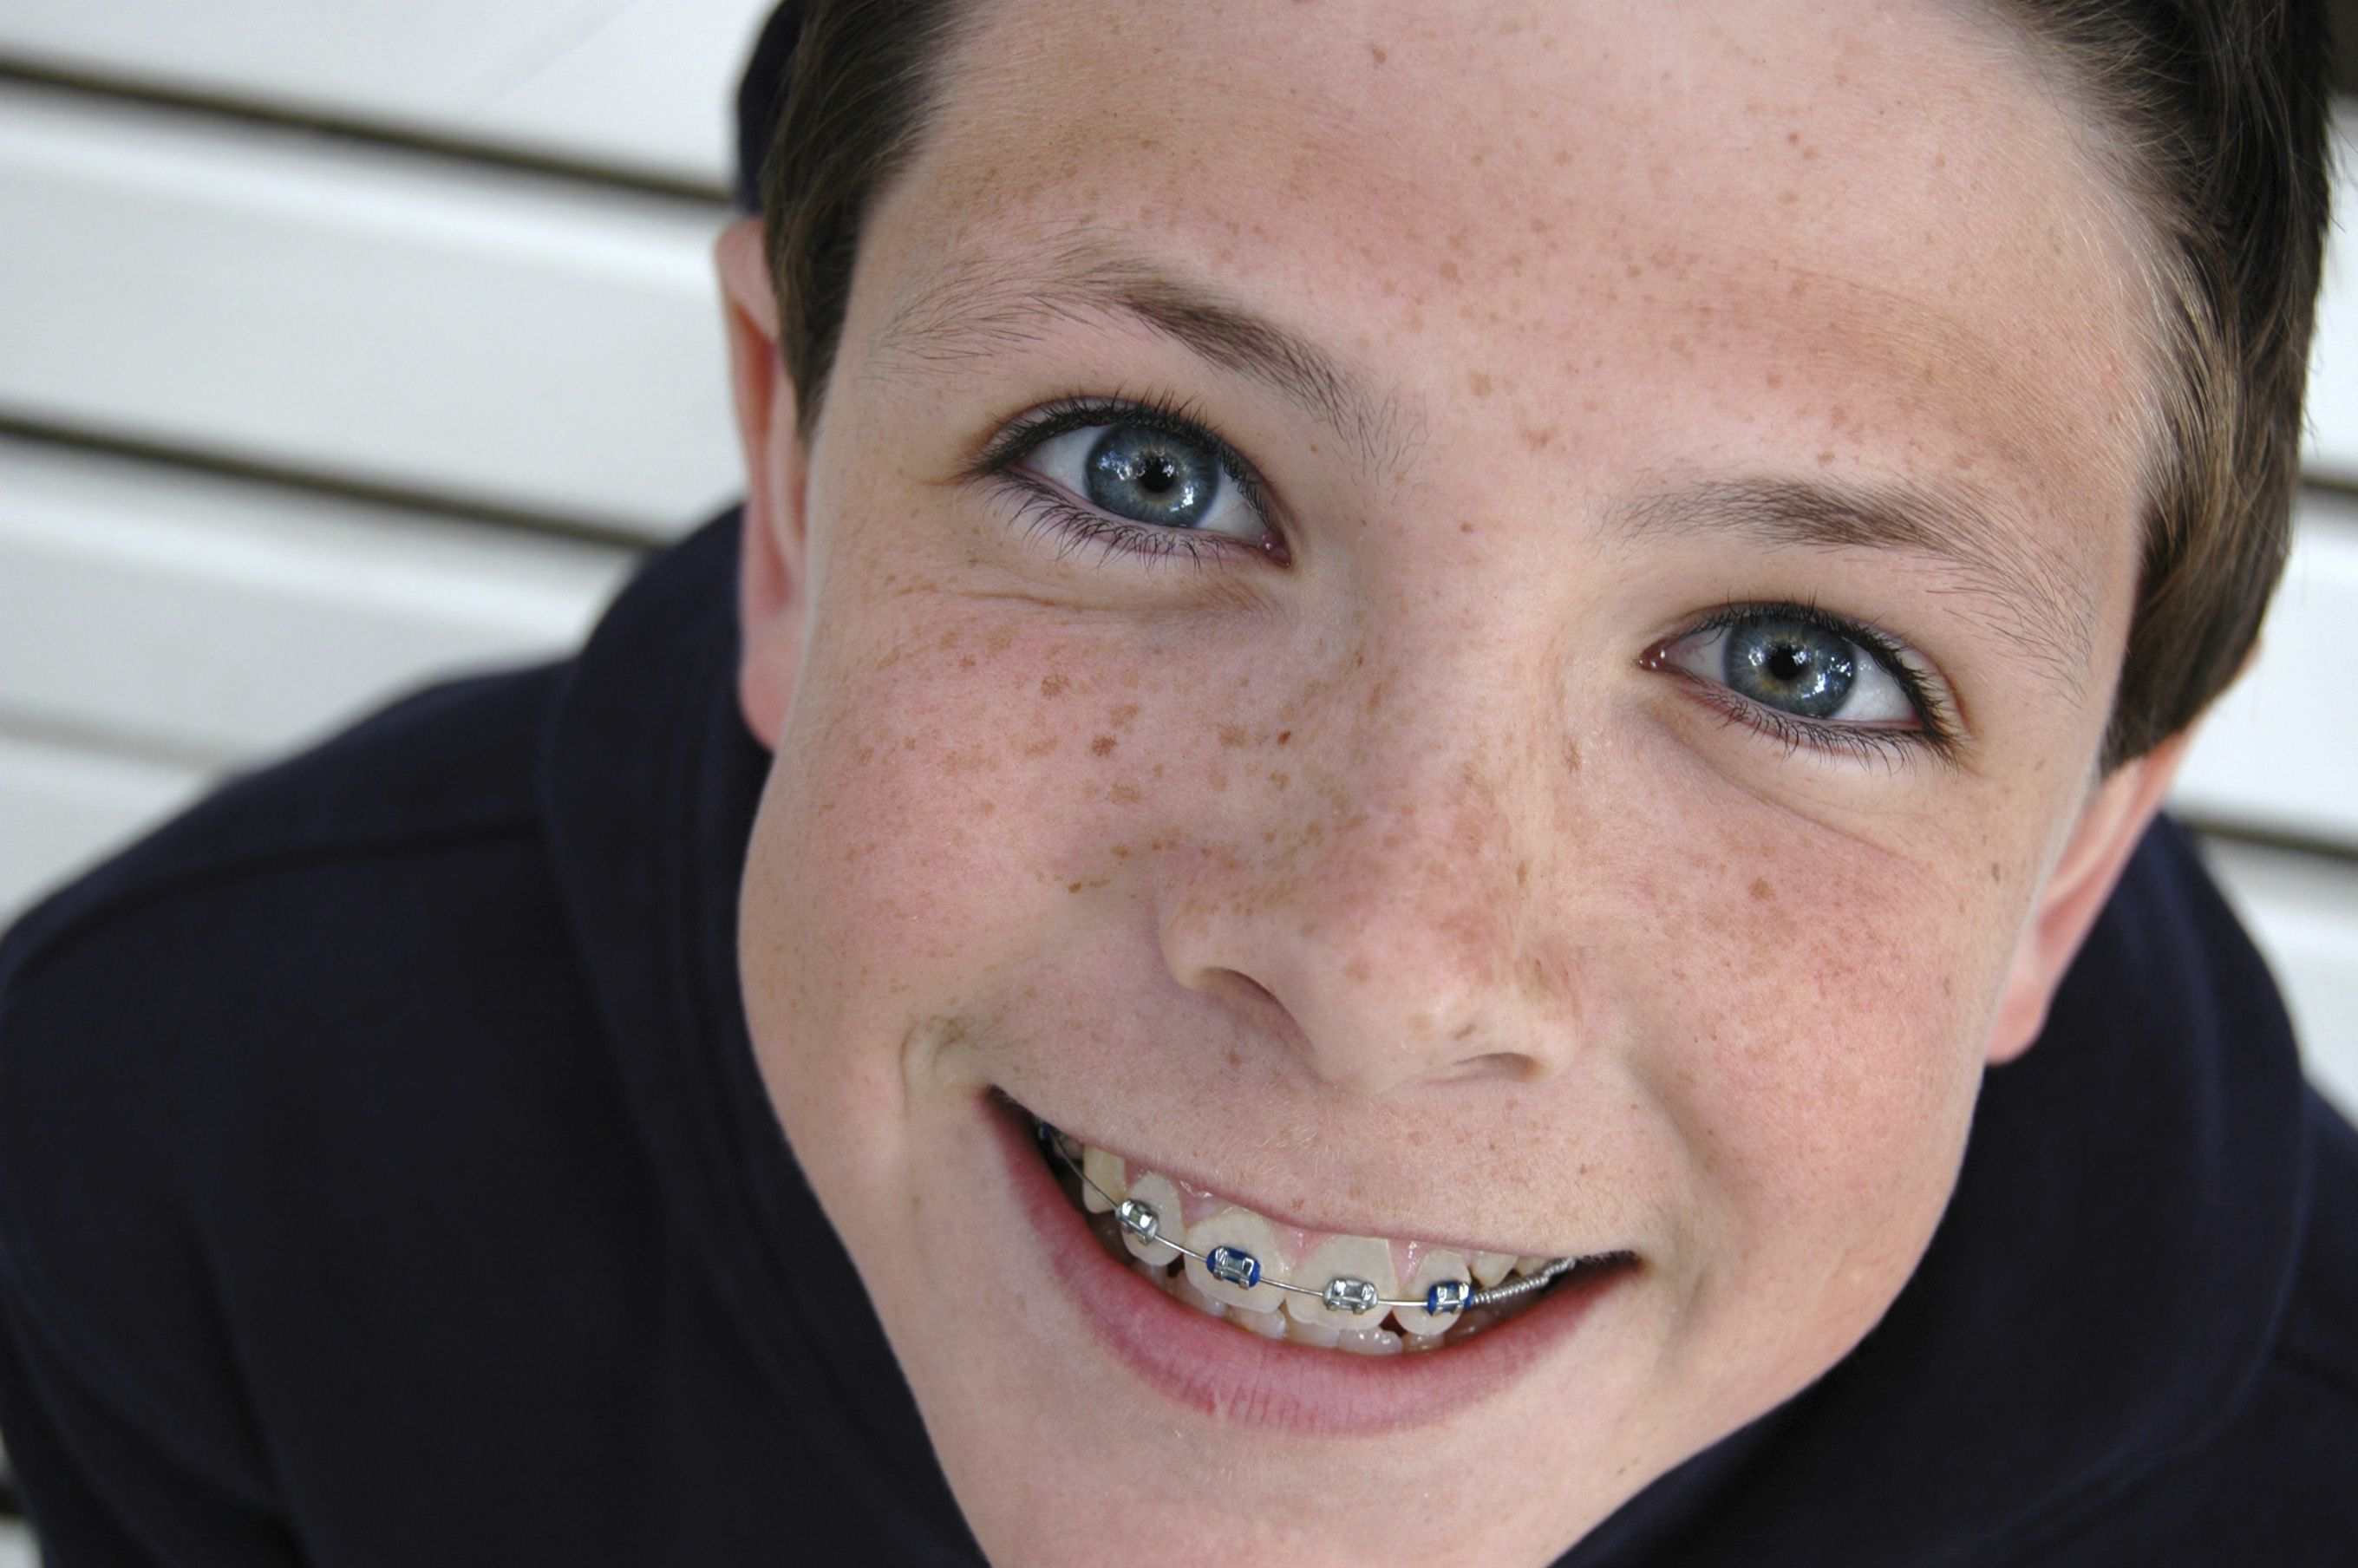 Orthodontia We Have Dental Plans That Include Orthodontic